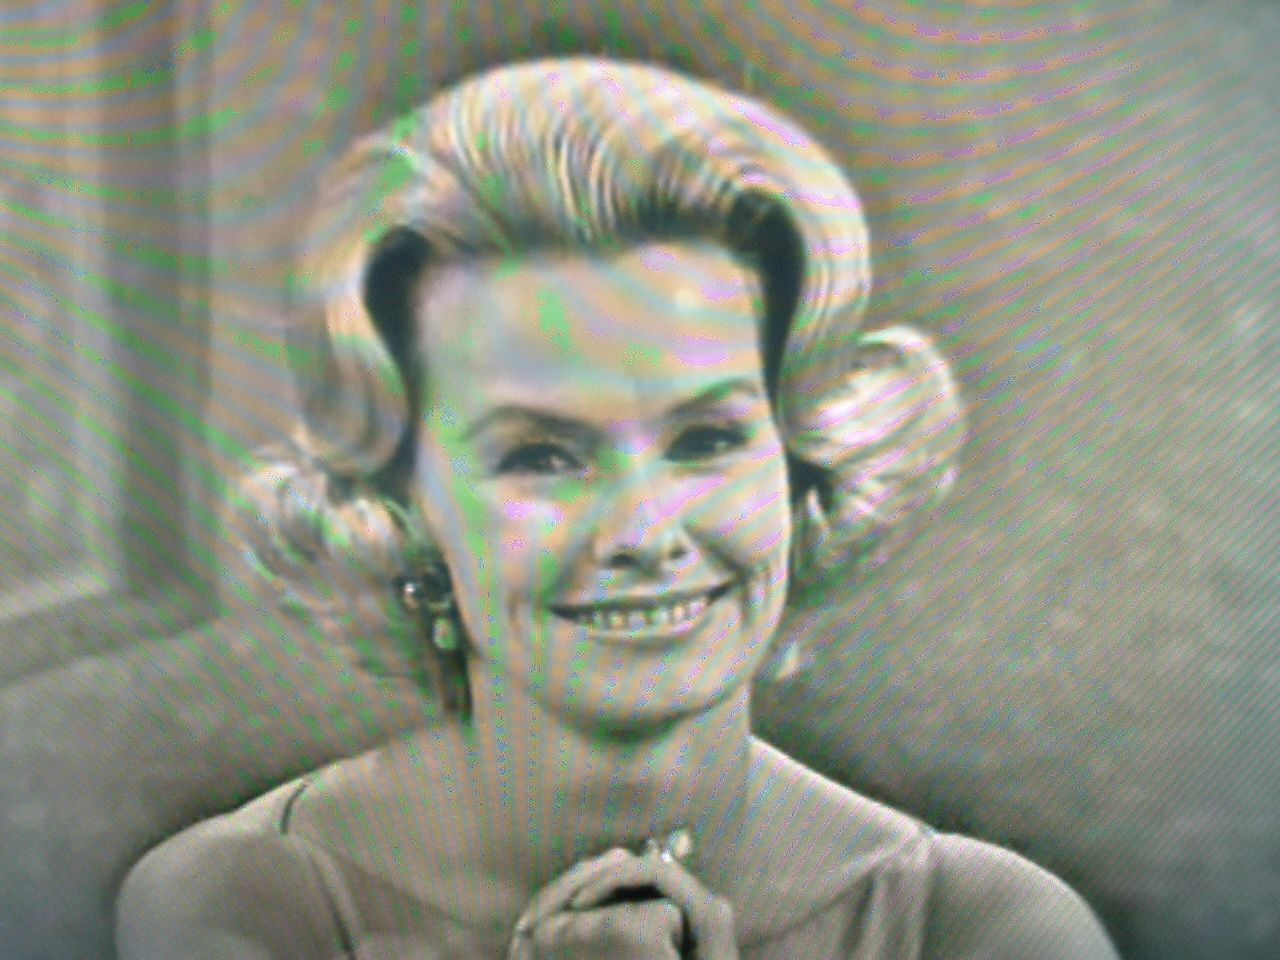 Jan crouch without wig jan crouch without her wig jan crouch goddess - Dina Merrill